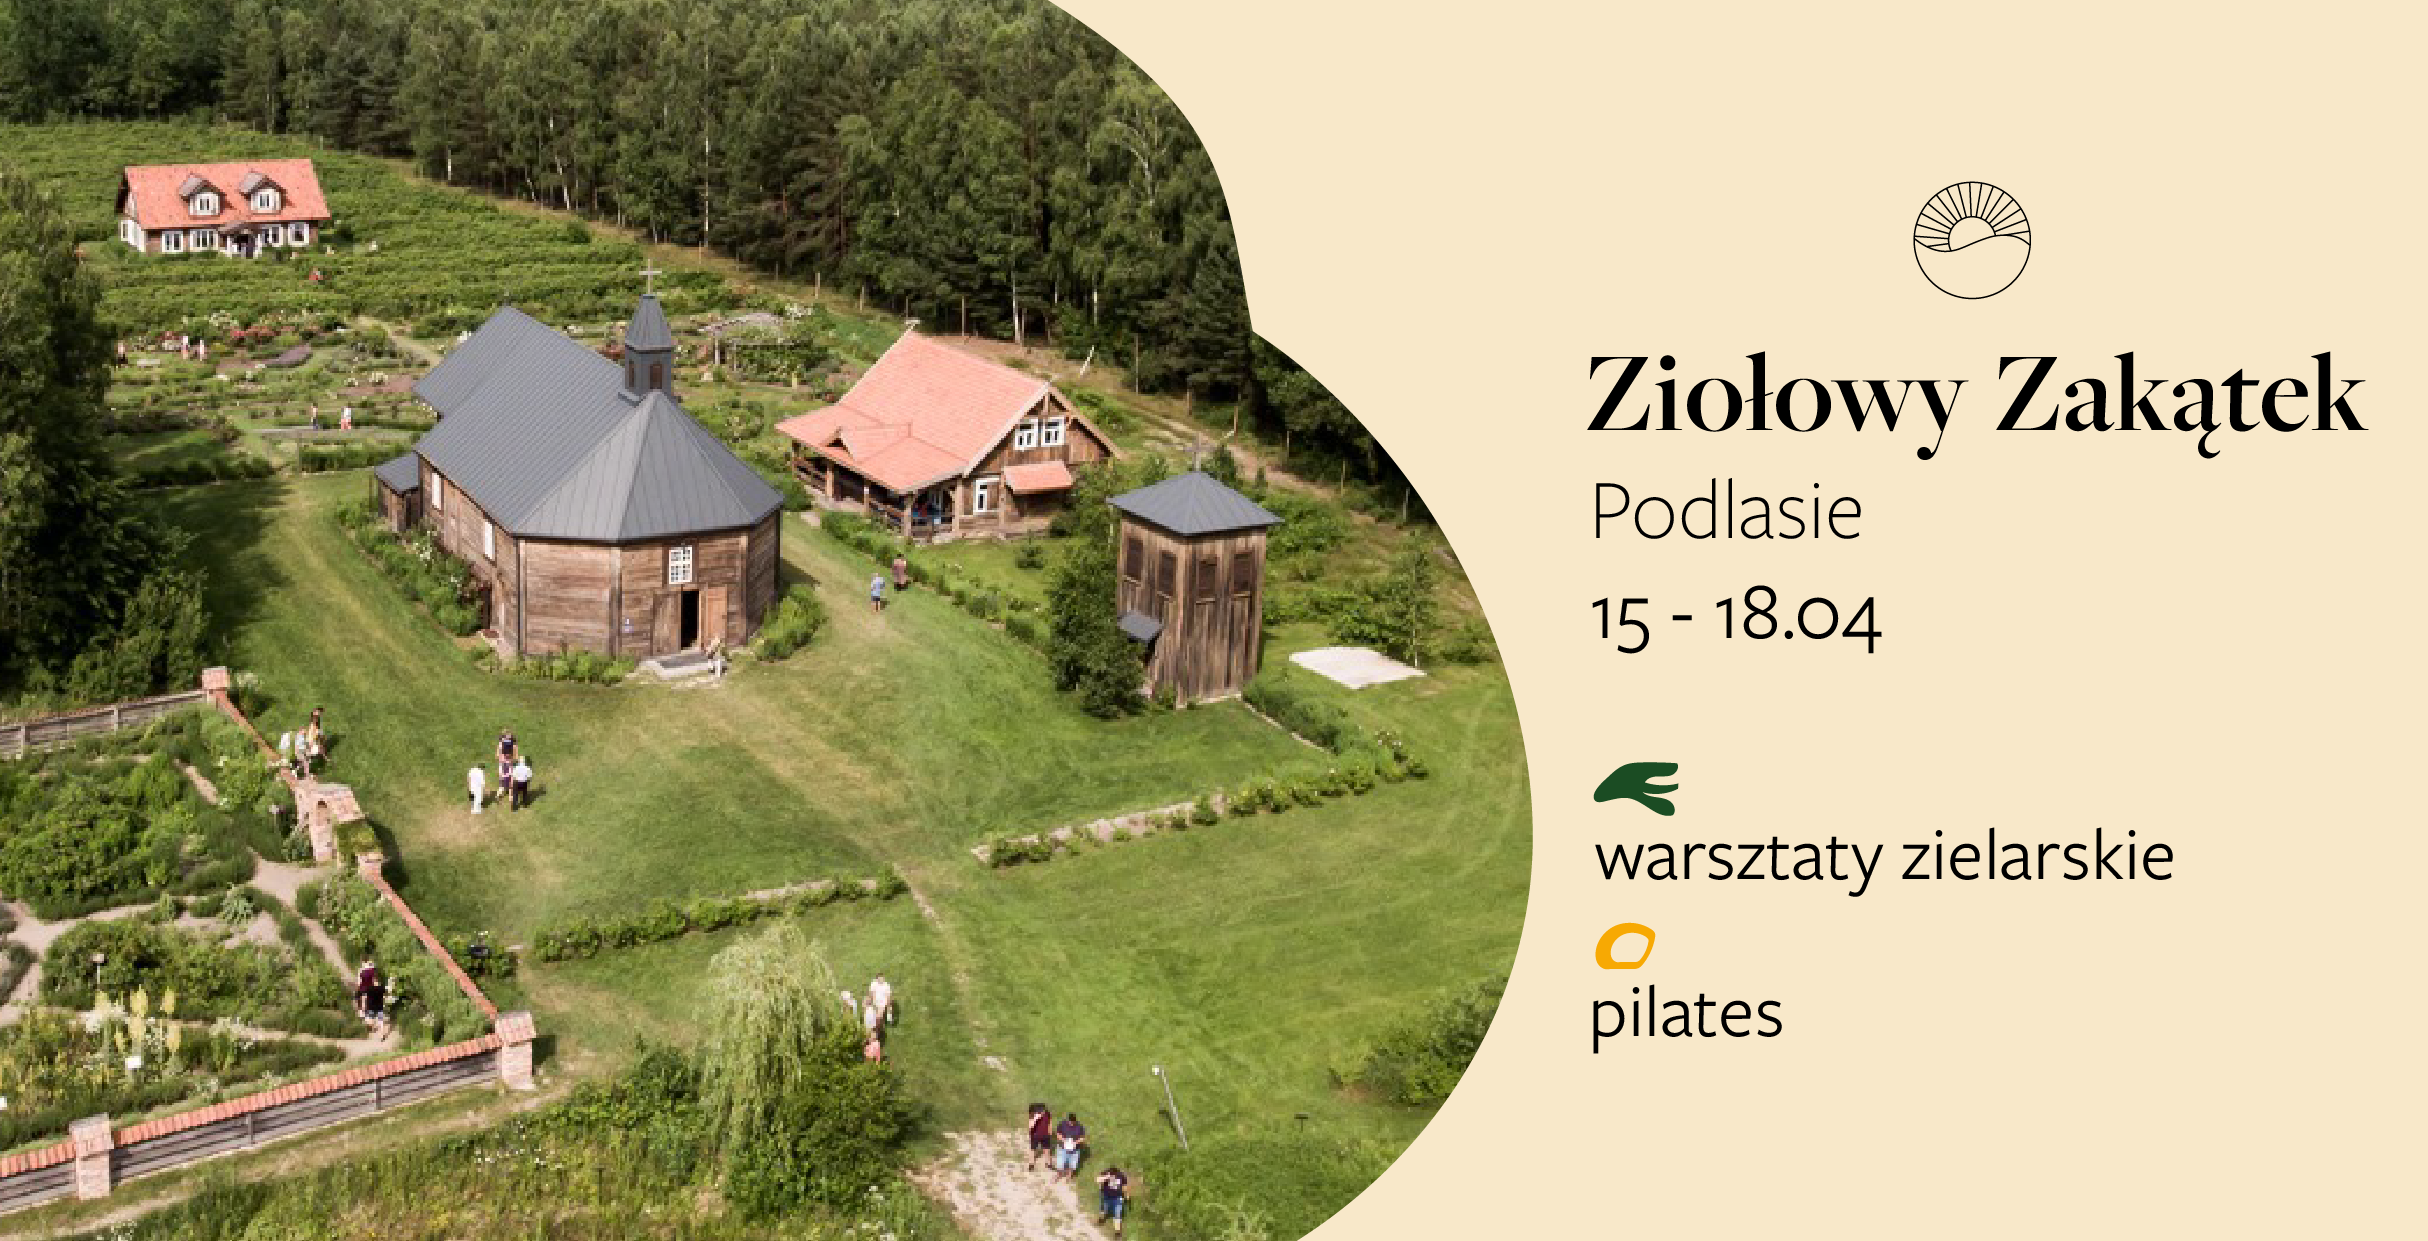 Slow weekend & pilates & warsztaty zielarskie